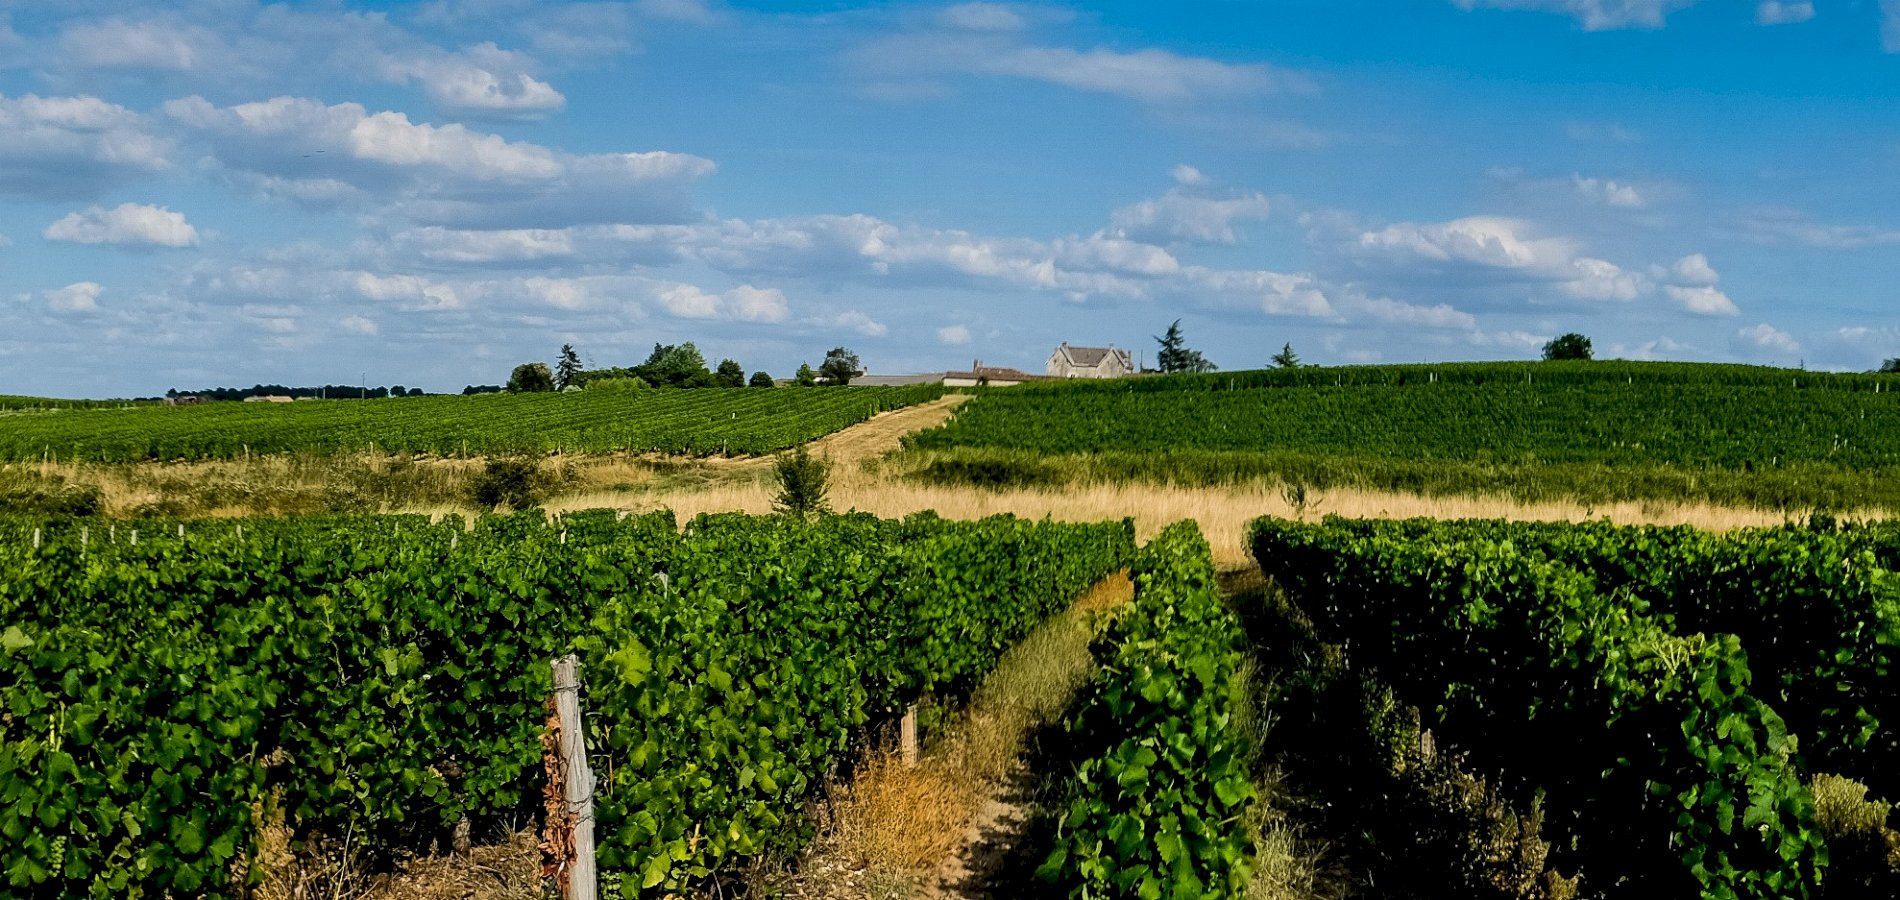 Ophorus Tours - 5 Days Bordeaux Grands Crus Wines Private Travel Package - 4* Hotel Option